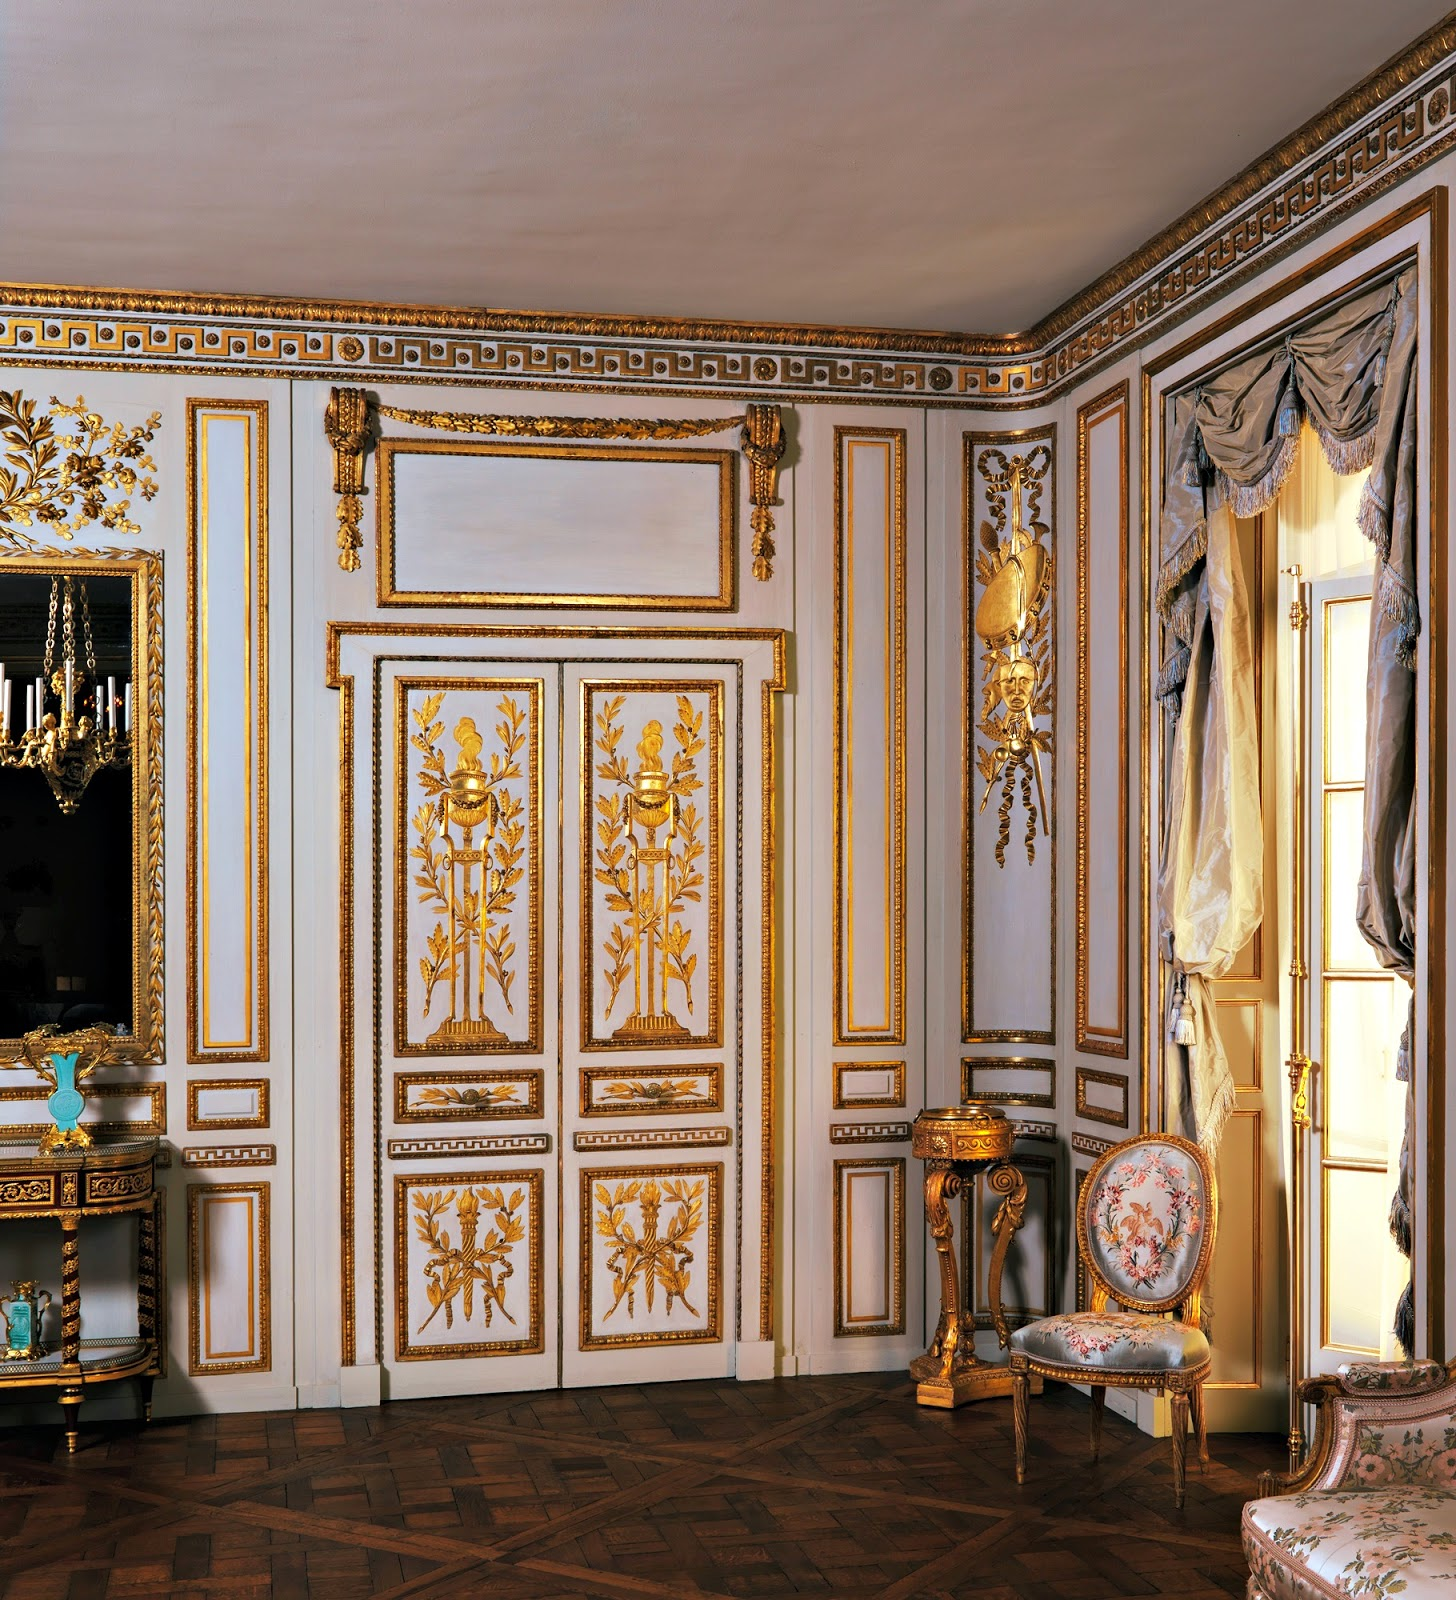 An 18th century athènienne sits in the corner of a room used for entertaining.